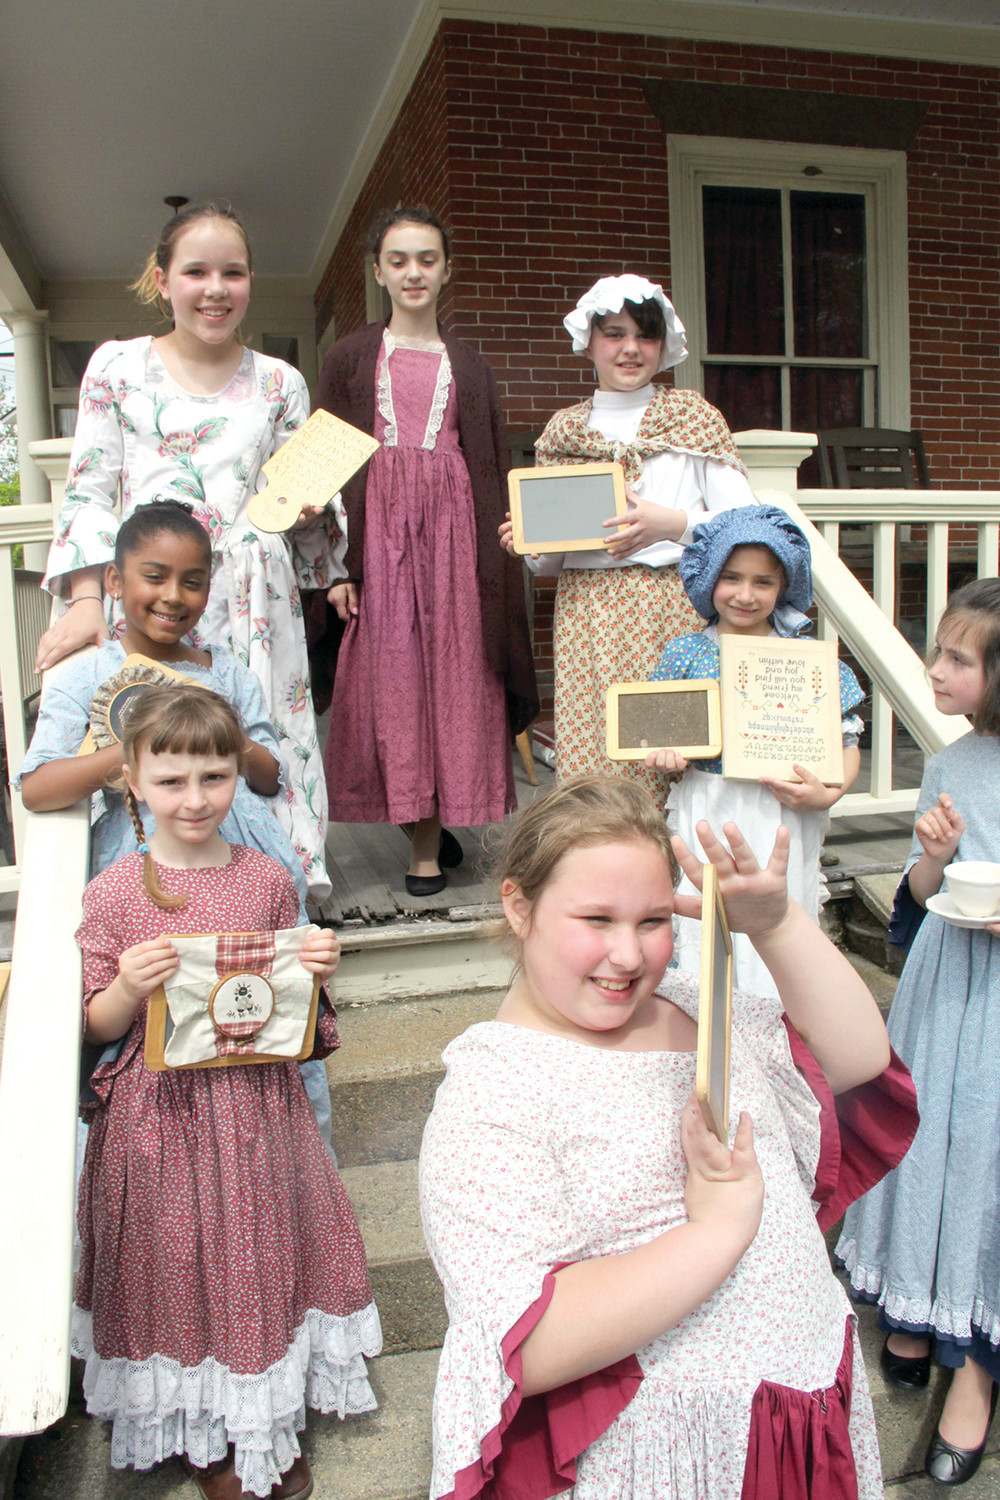 THEY HAD TABLETS: Yes, colonial students had tablets, although they surely weren't called Chromebooks or iPads back then. Here, the students from the Pawtuxet Girls Academy gather on the steps of the Bank Café to describe the classroom of the colonial era.